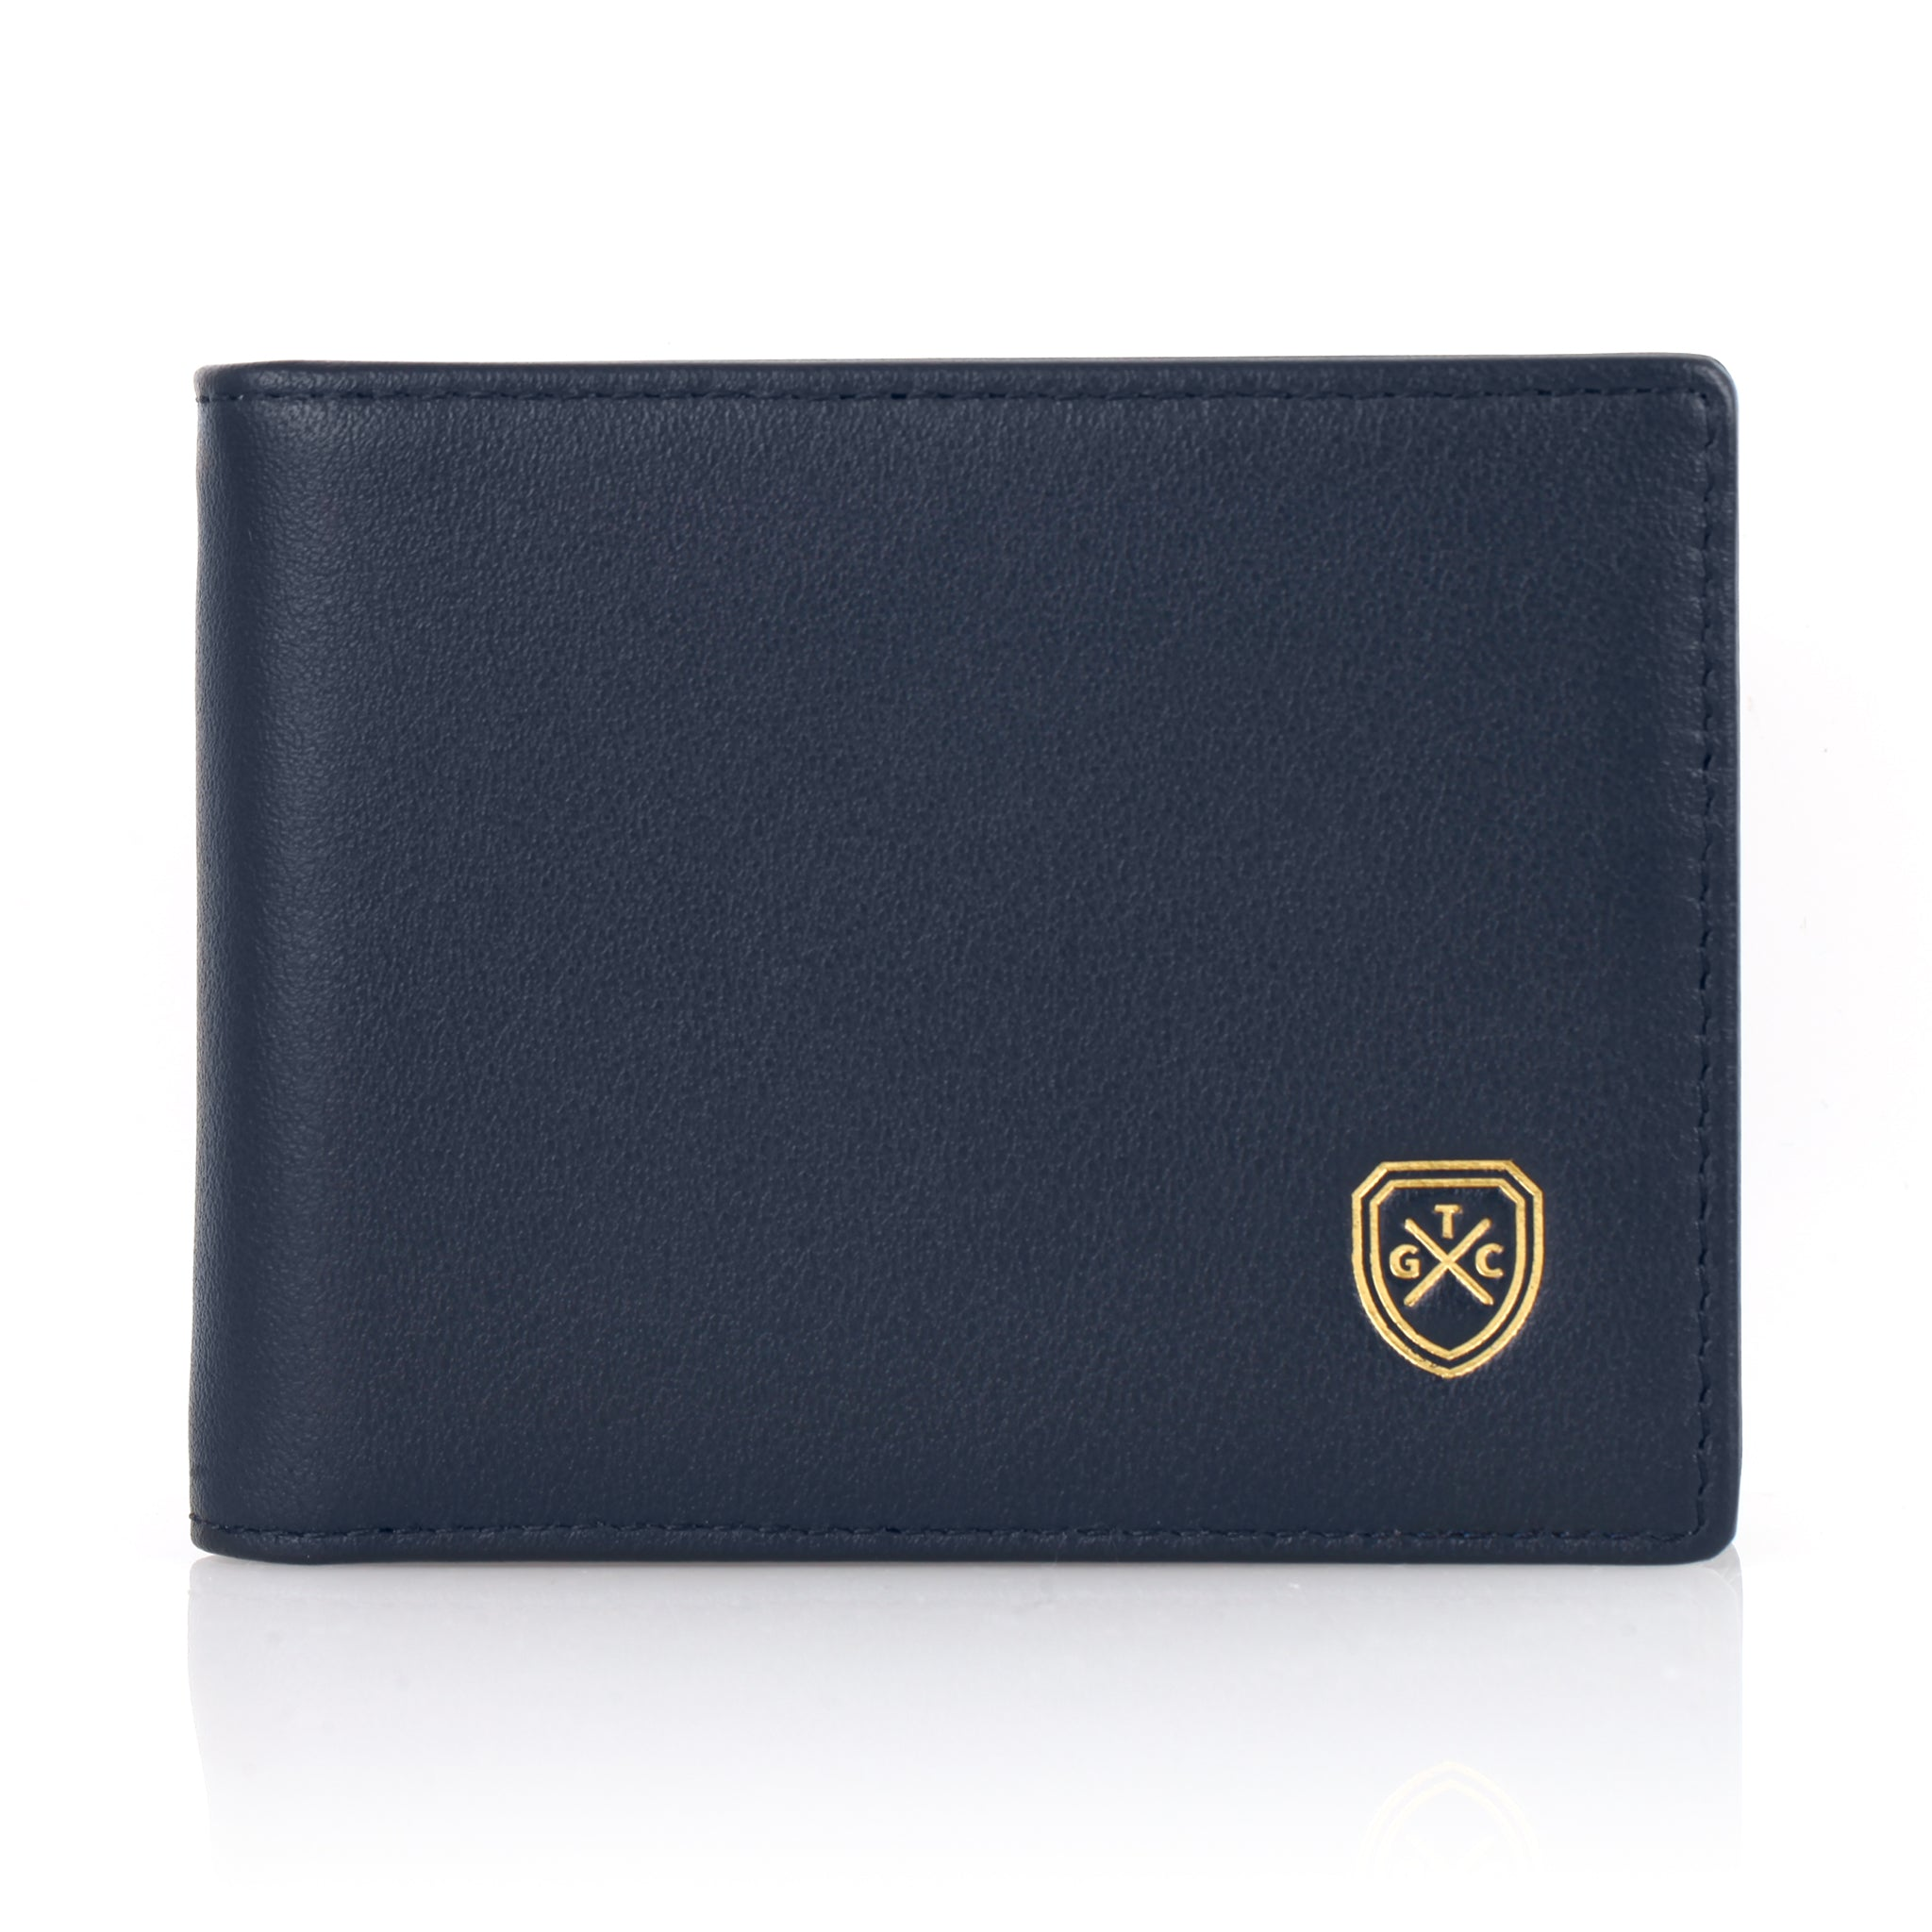 Full-Grain Leather Money Clip Wallet